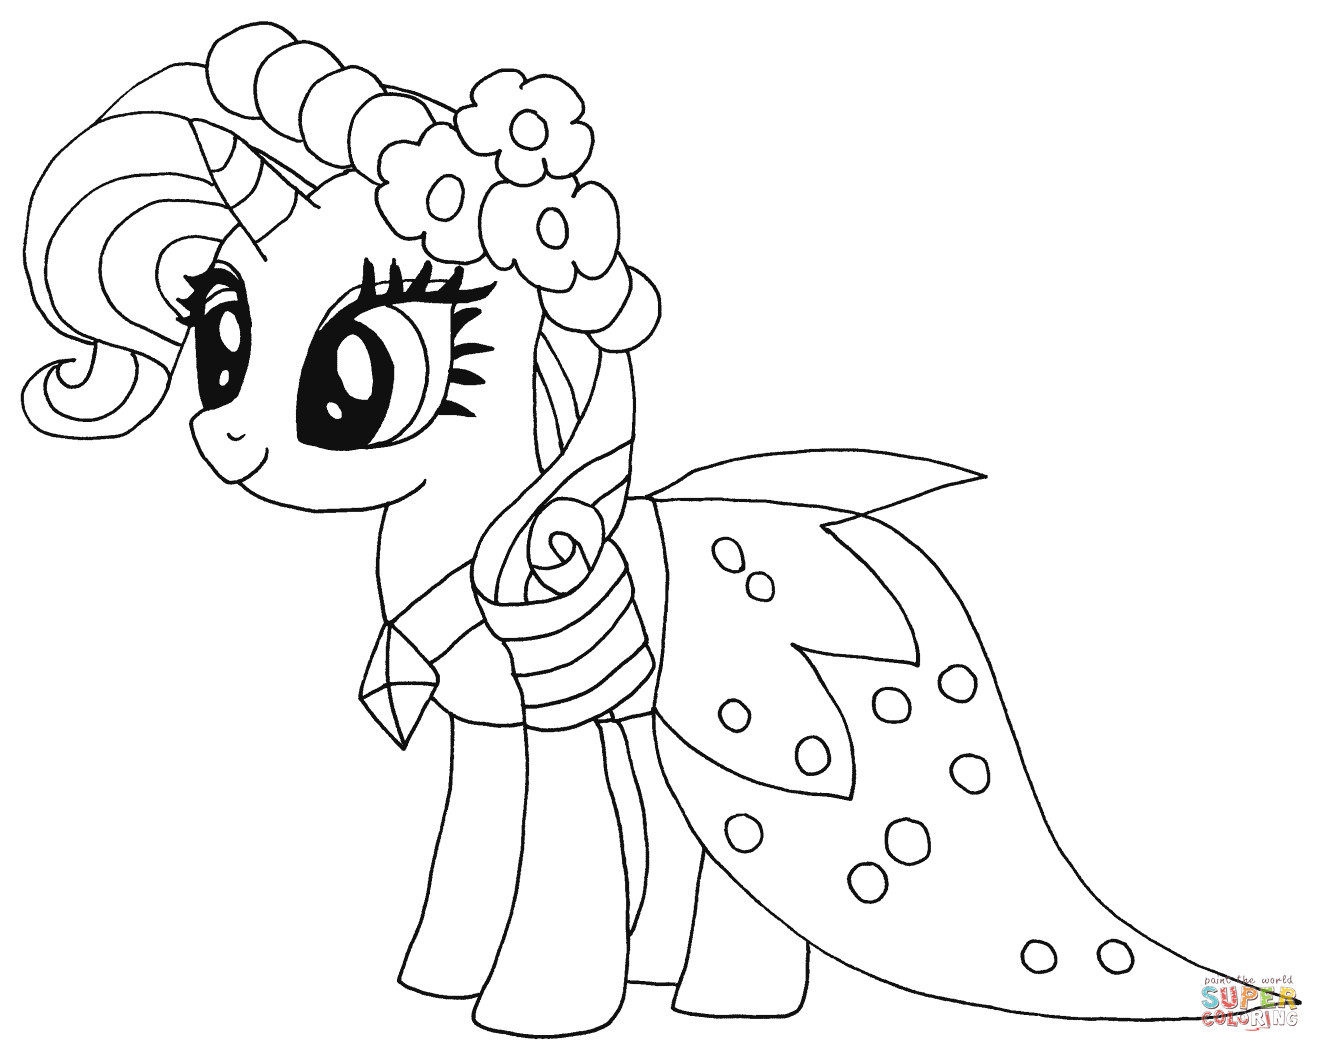 Twilight Coloring Sheets For Girls  Princess Twilight Coloring Pages thekindproject